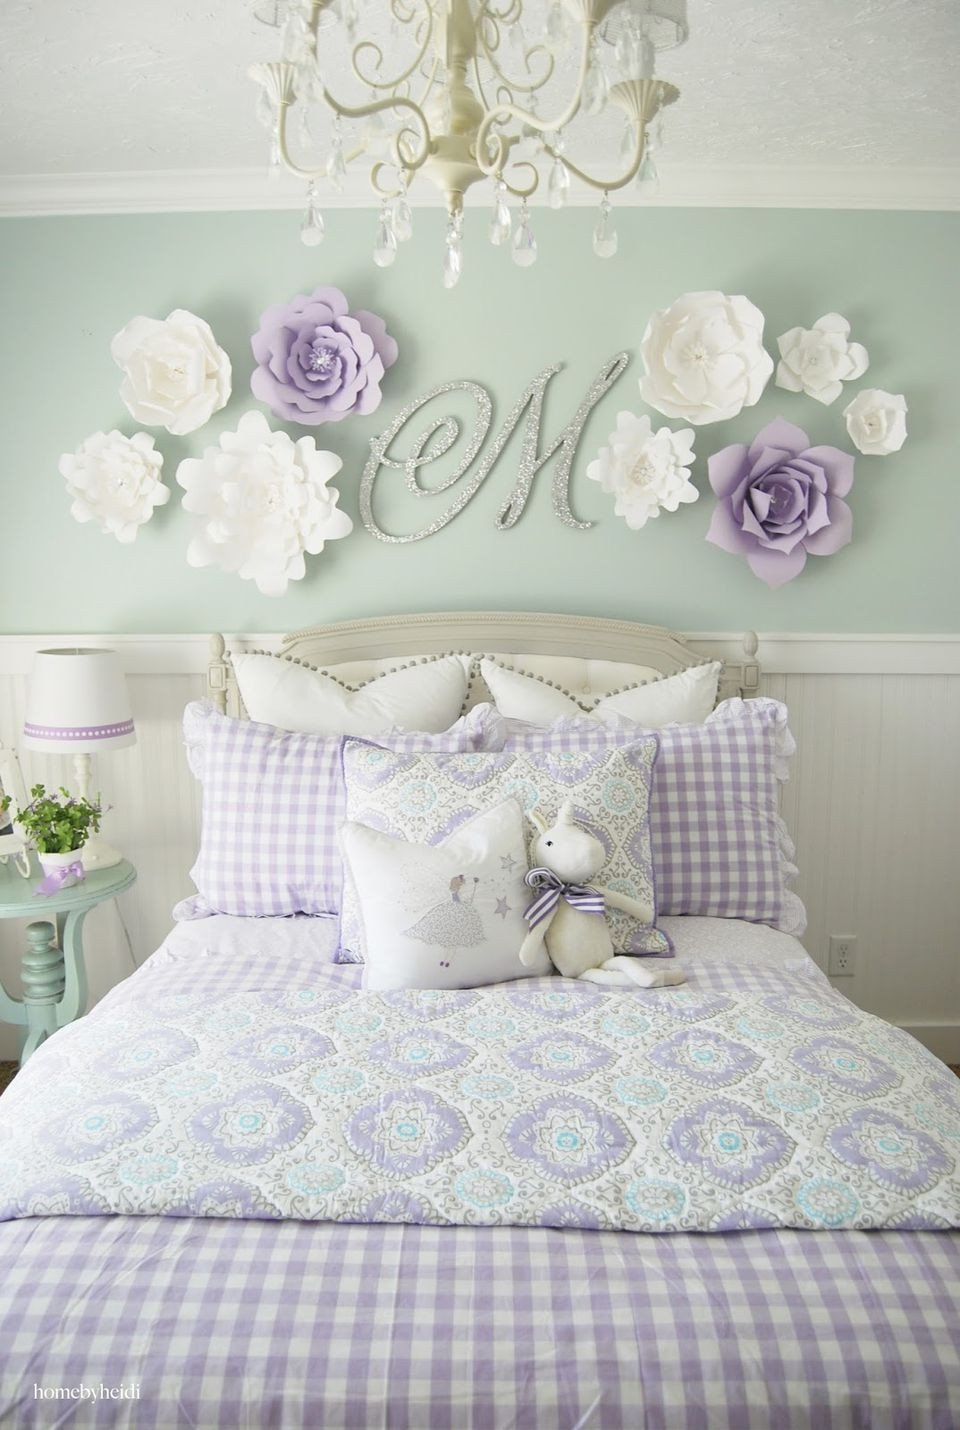 Wall Decor for Girls Bedroom Elegant 24 Wall Decor Ideas for Girls Rooms